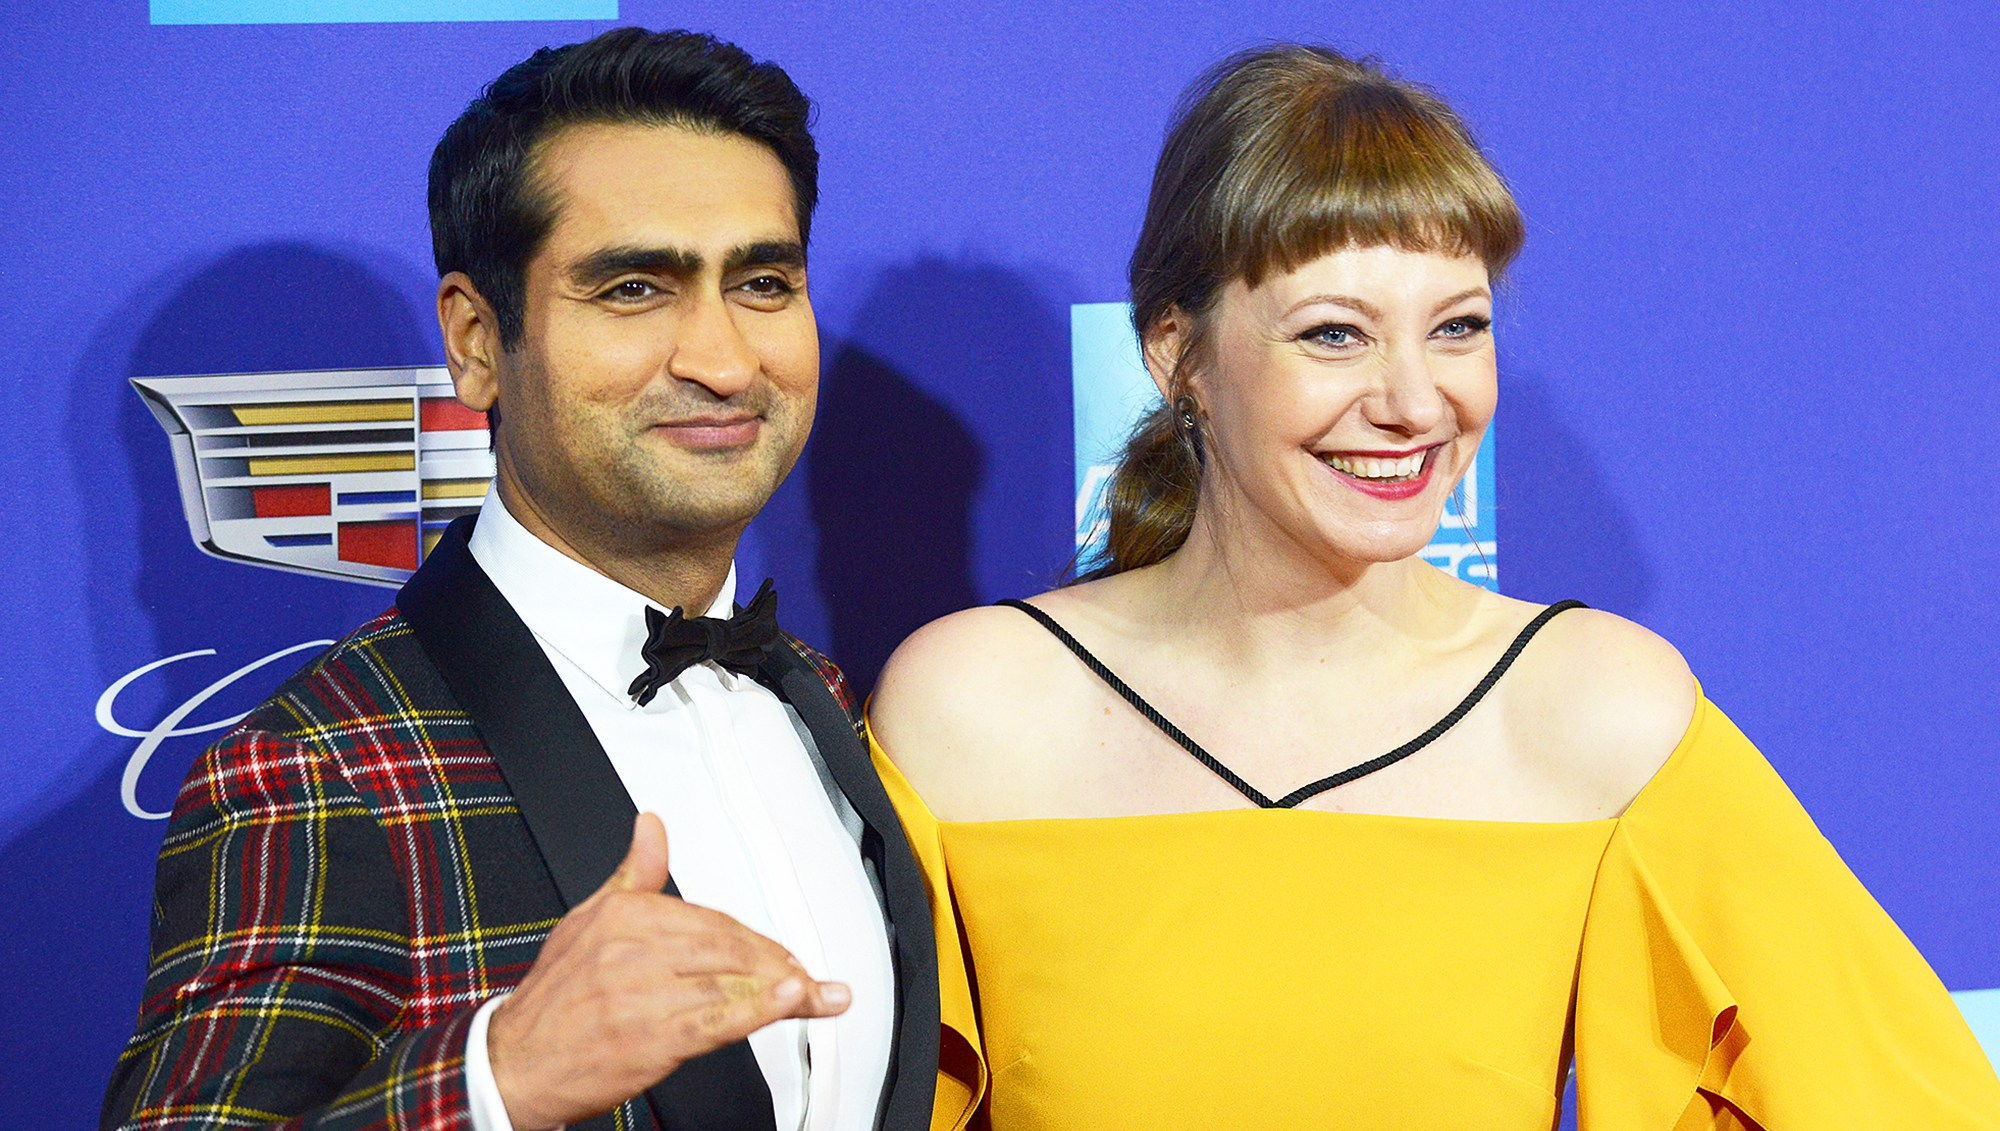 Kumail Nanjiani and Emily V. Gordon arrive for the 29th Annual Palm Springs International Film Festival Film Awards Gala held at Palm Springs Convention Center in Palm Springs, California.